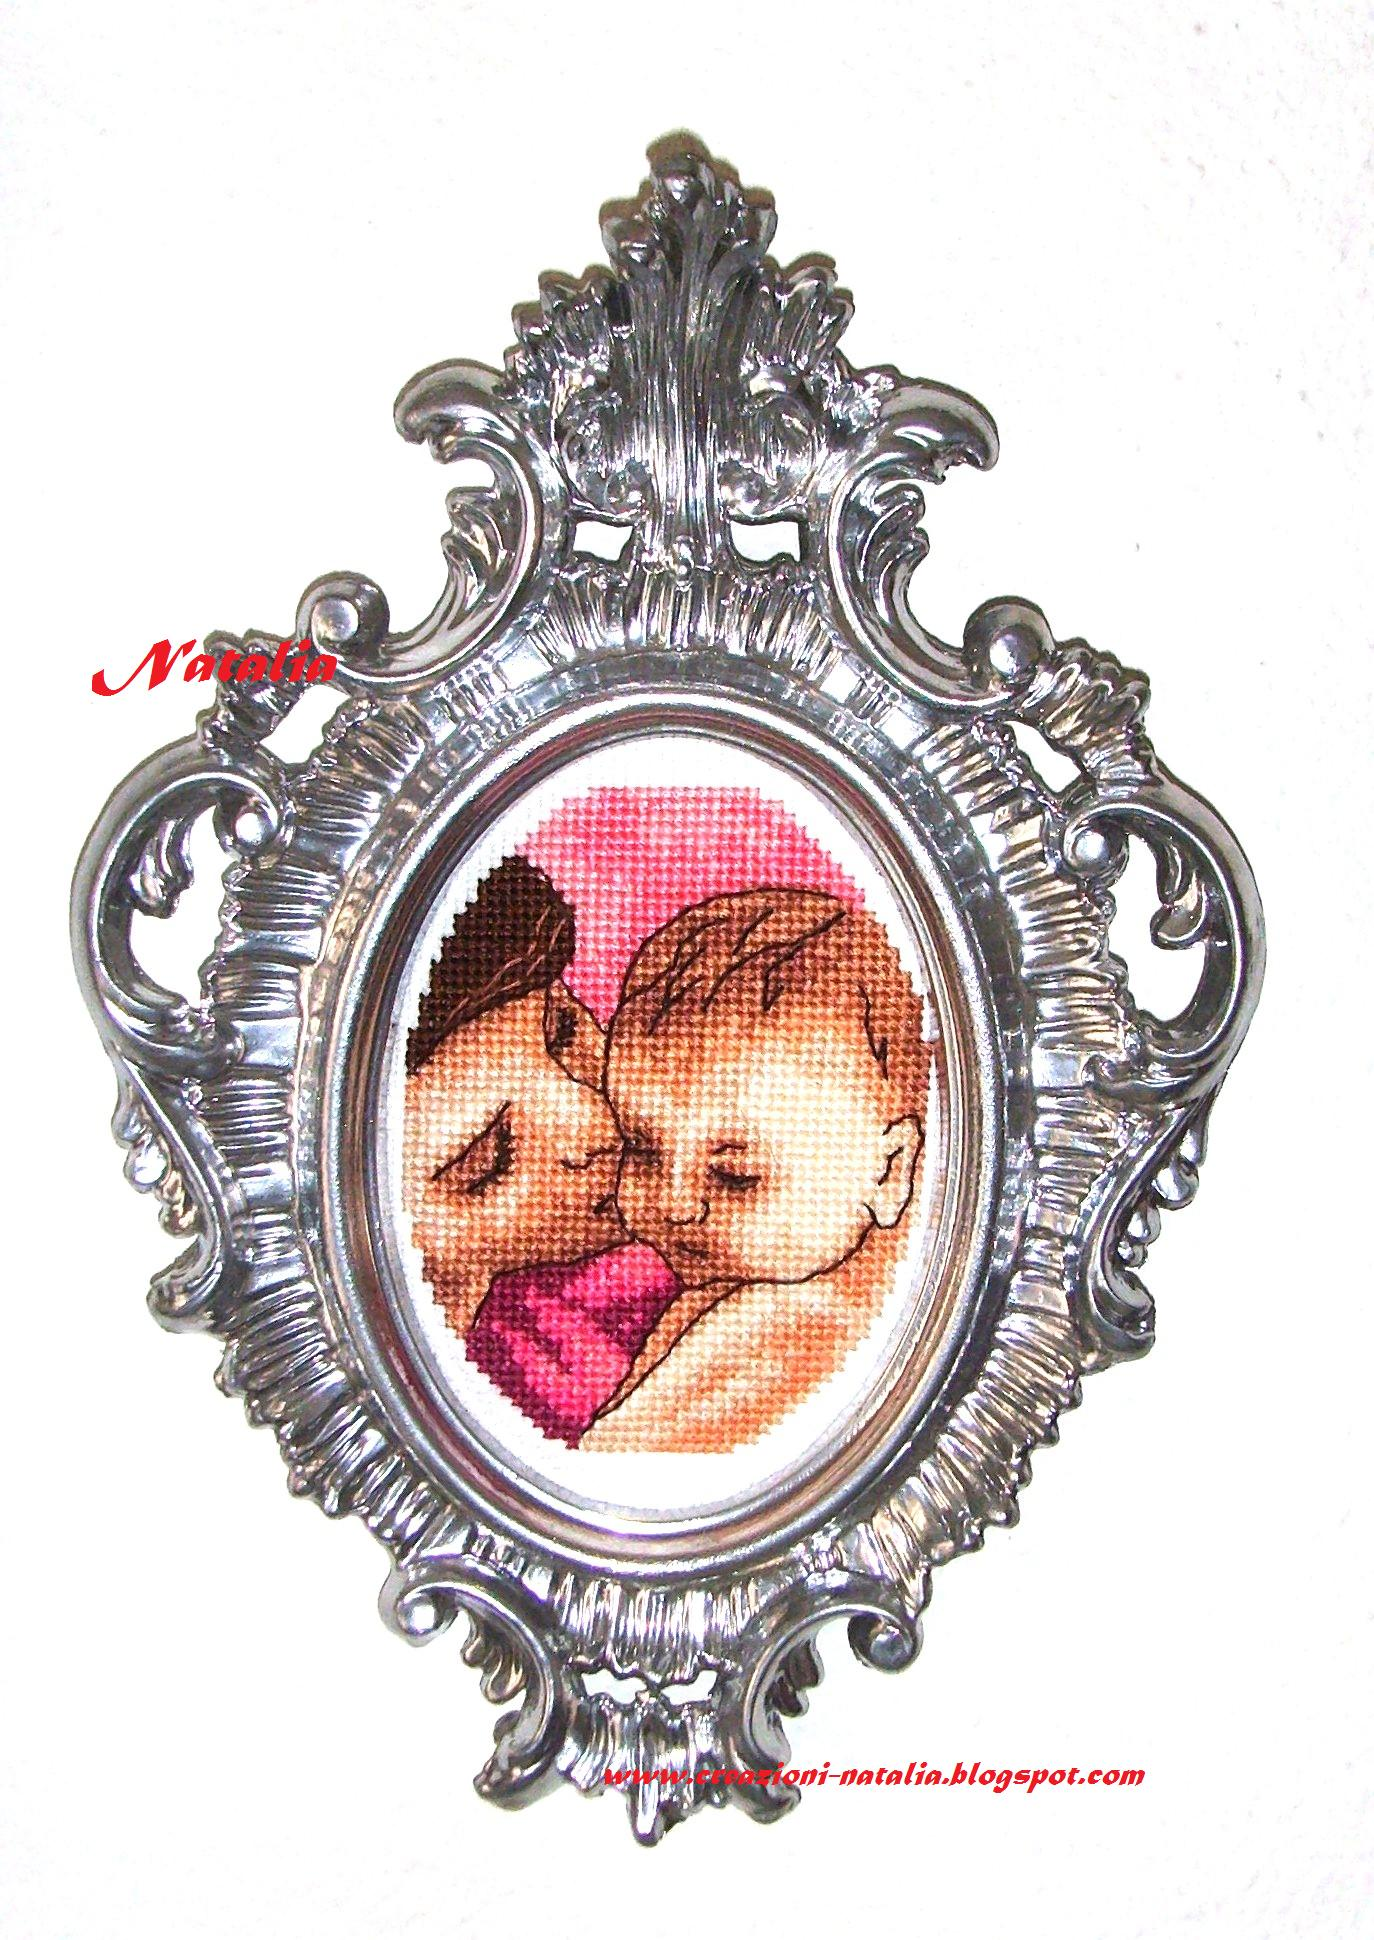 http://make-handmade.com/wp-content/uploads/2011/12/mother-day-gifts-mother-baby-cross-stitch-make-handmade-157ef4b24816d.jpg